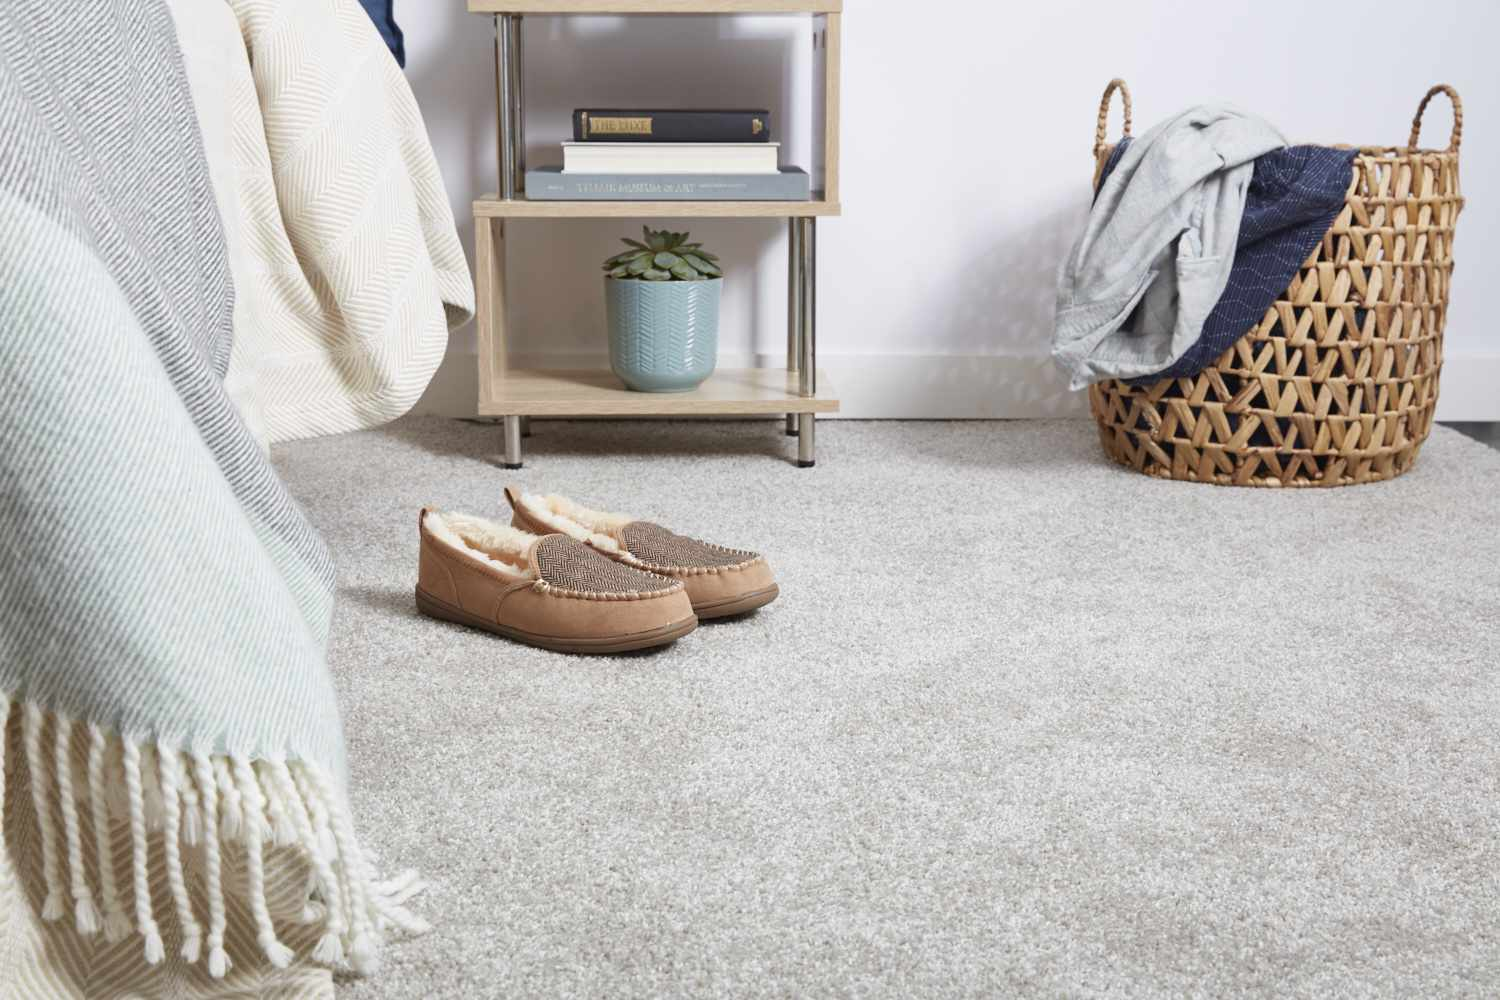 Carpet flooring with with wool shoes next to bed and woven hamper, in front of nightstand